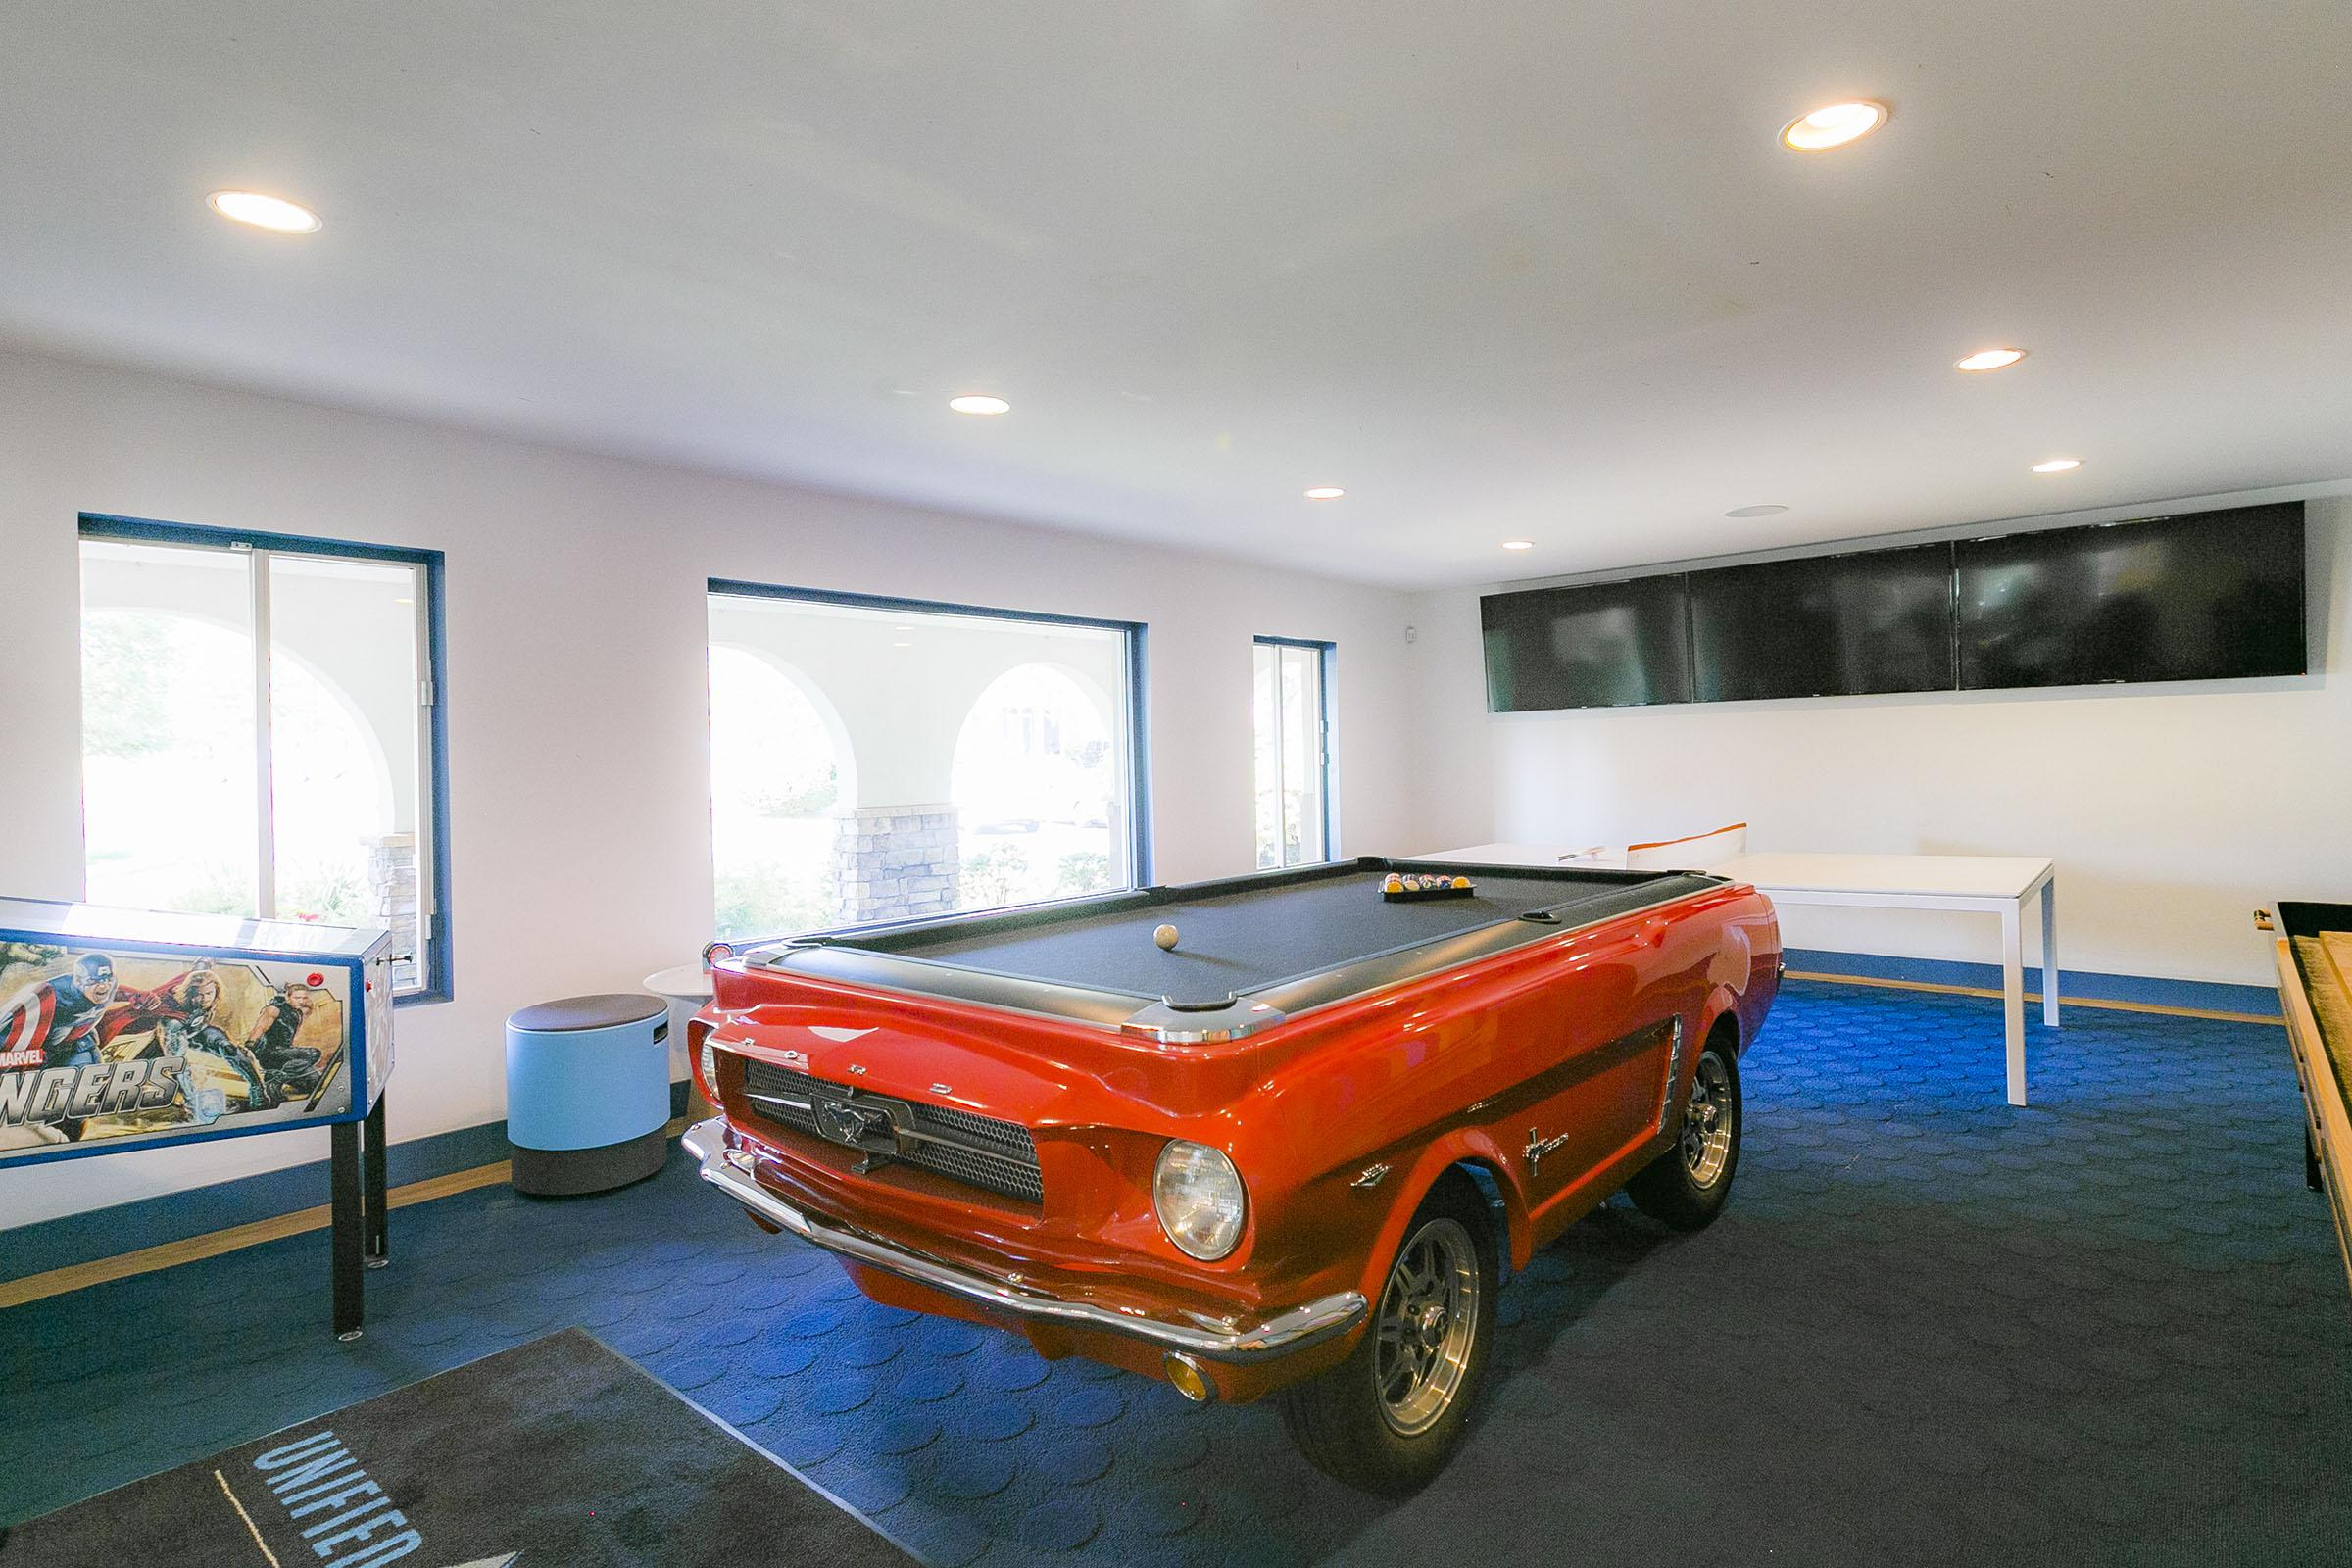 a room filled with furniture and a red car